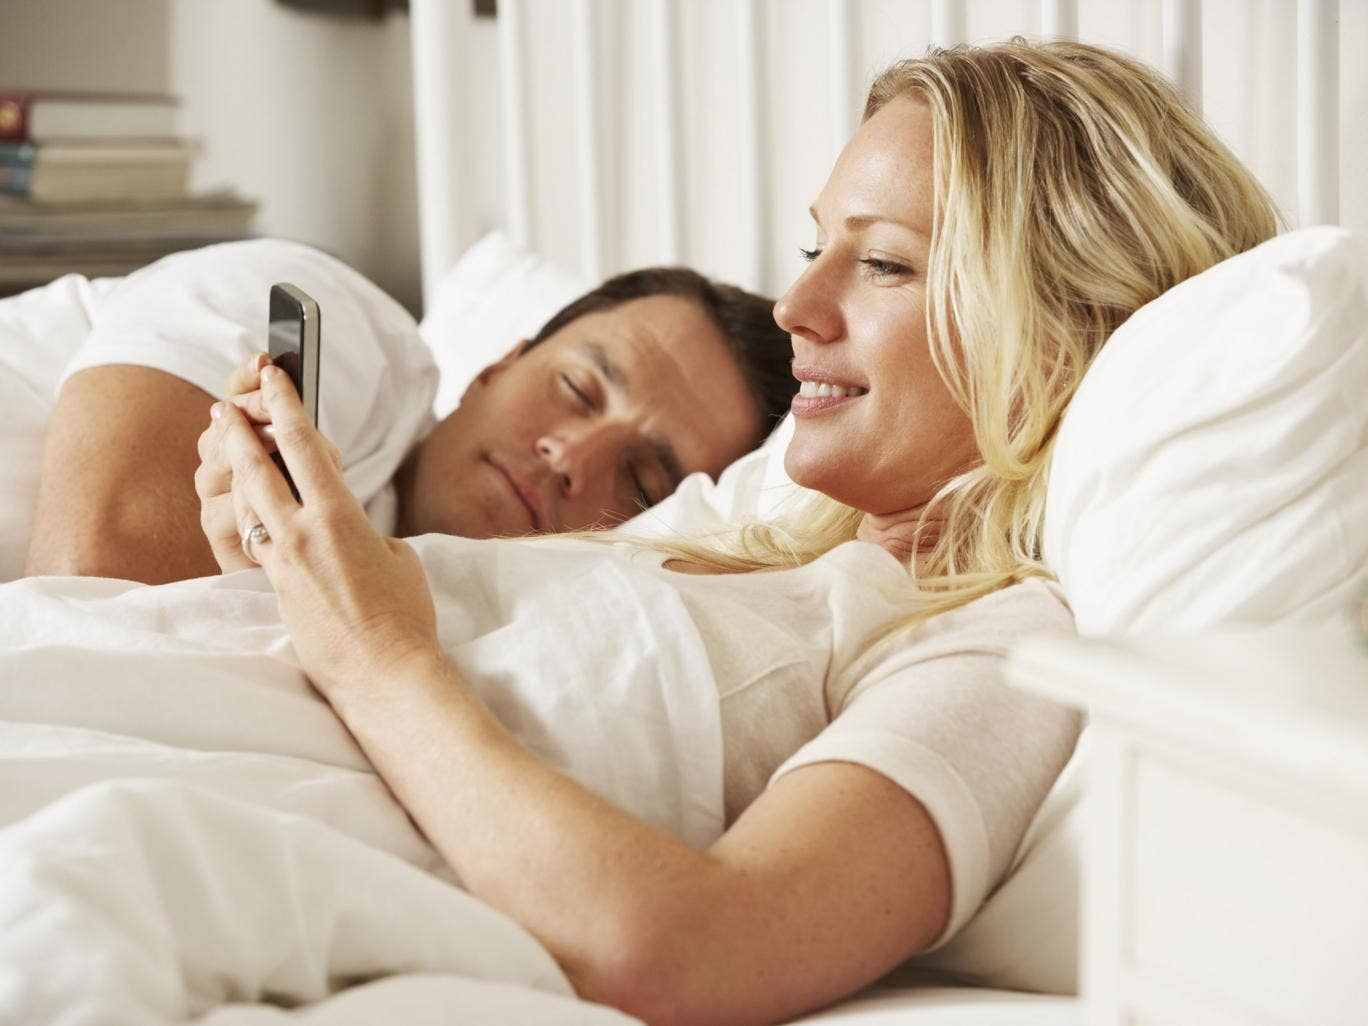 Girl having sex while on phone